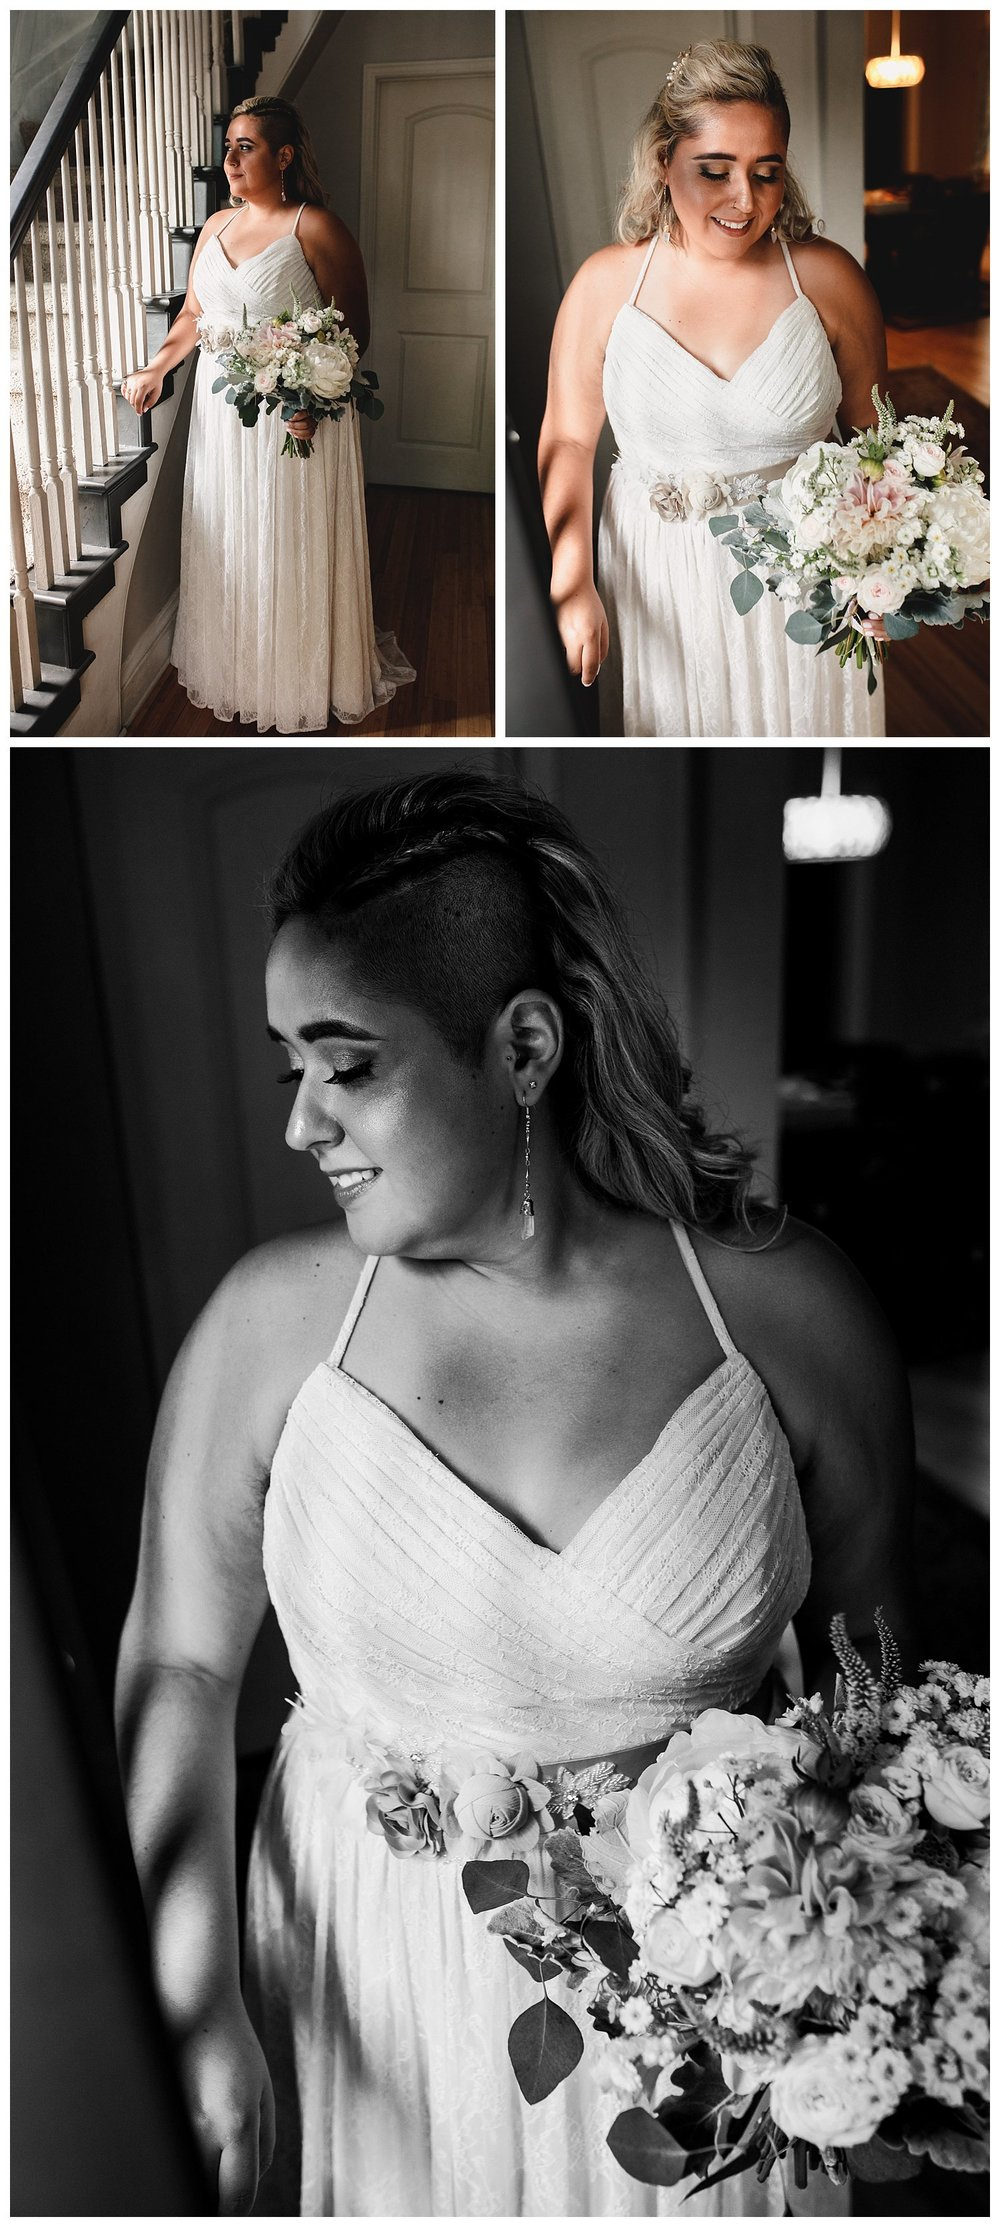 Kelsey_Diane_Photography_The_Vow_Exchange_Kansas_City_LGBT_Friendly_Wedding_Photographer_Kansas_City_Scout_Ica_0707.jpg